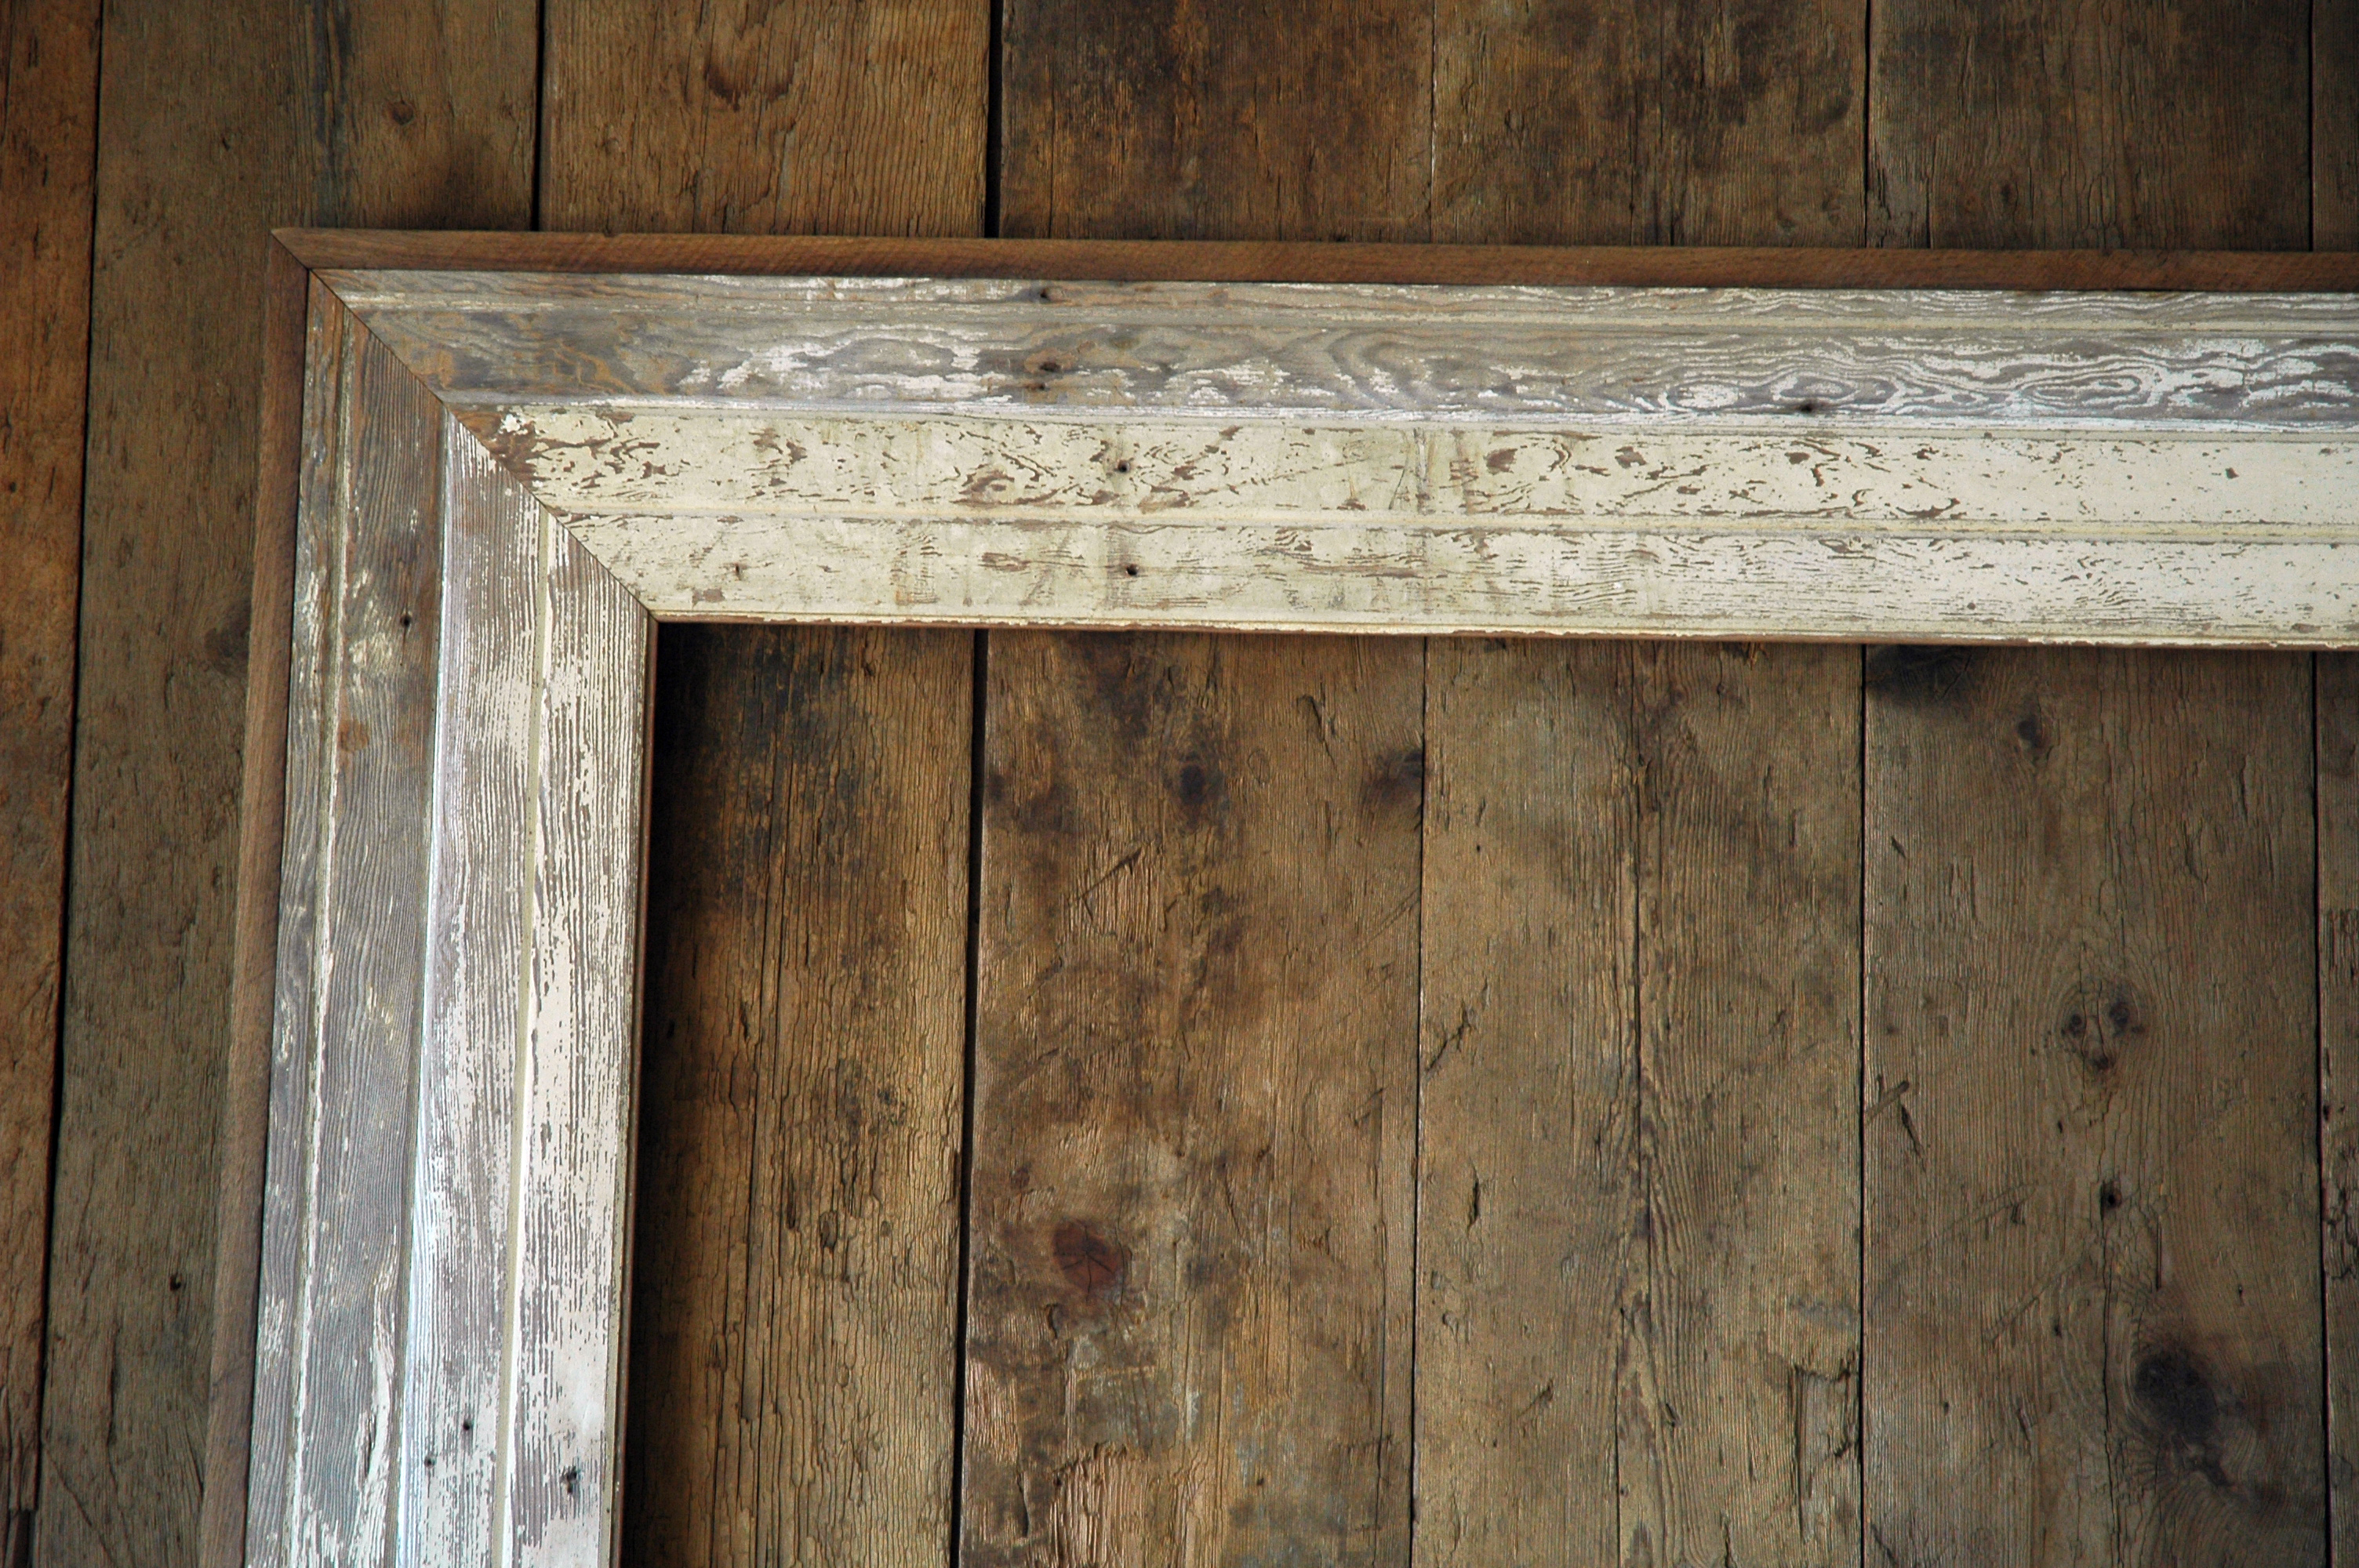 Farrell leaner mirror angle cuts products farrell for Barn wood salvage companies